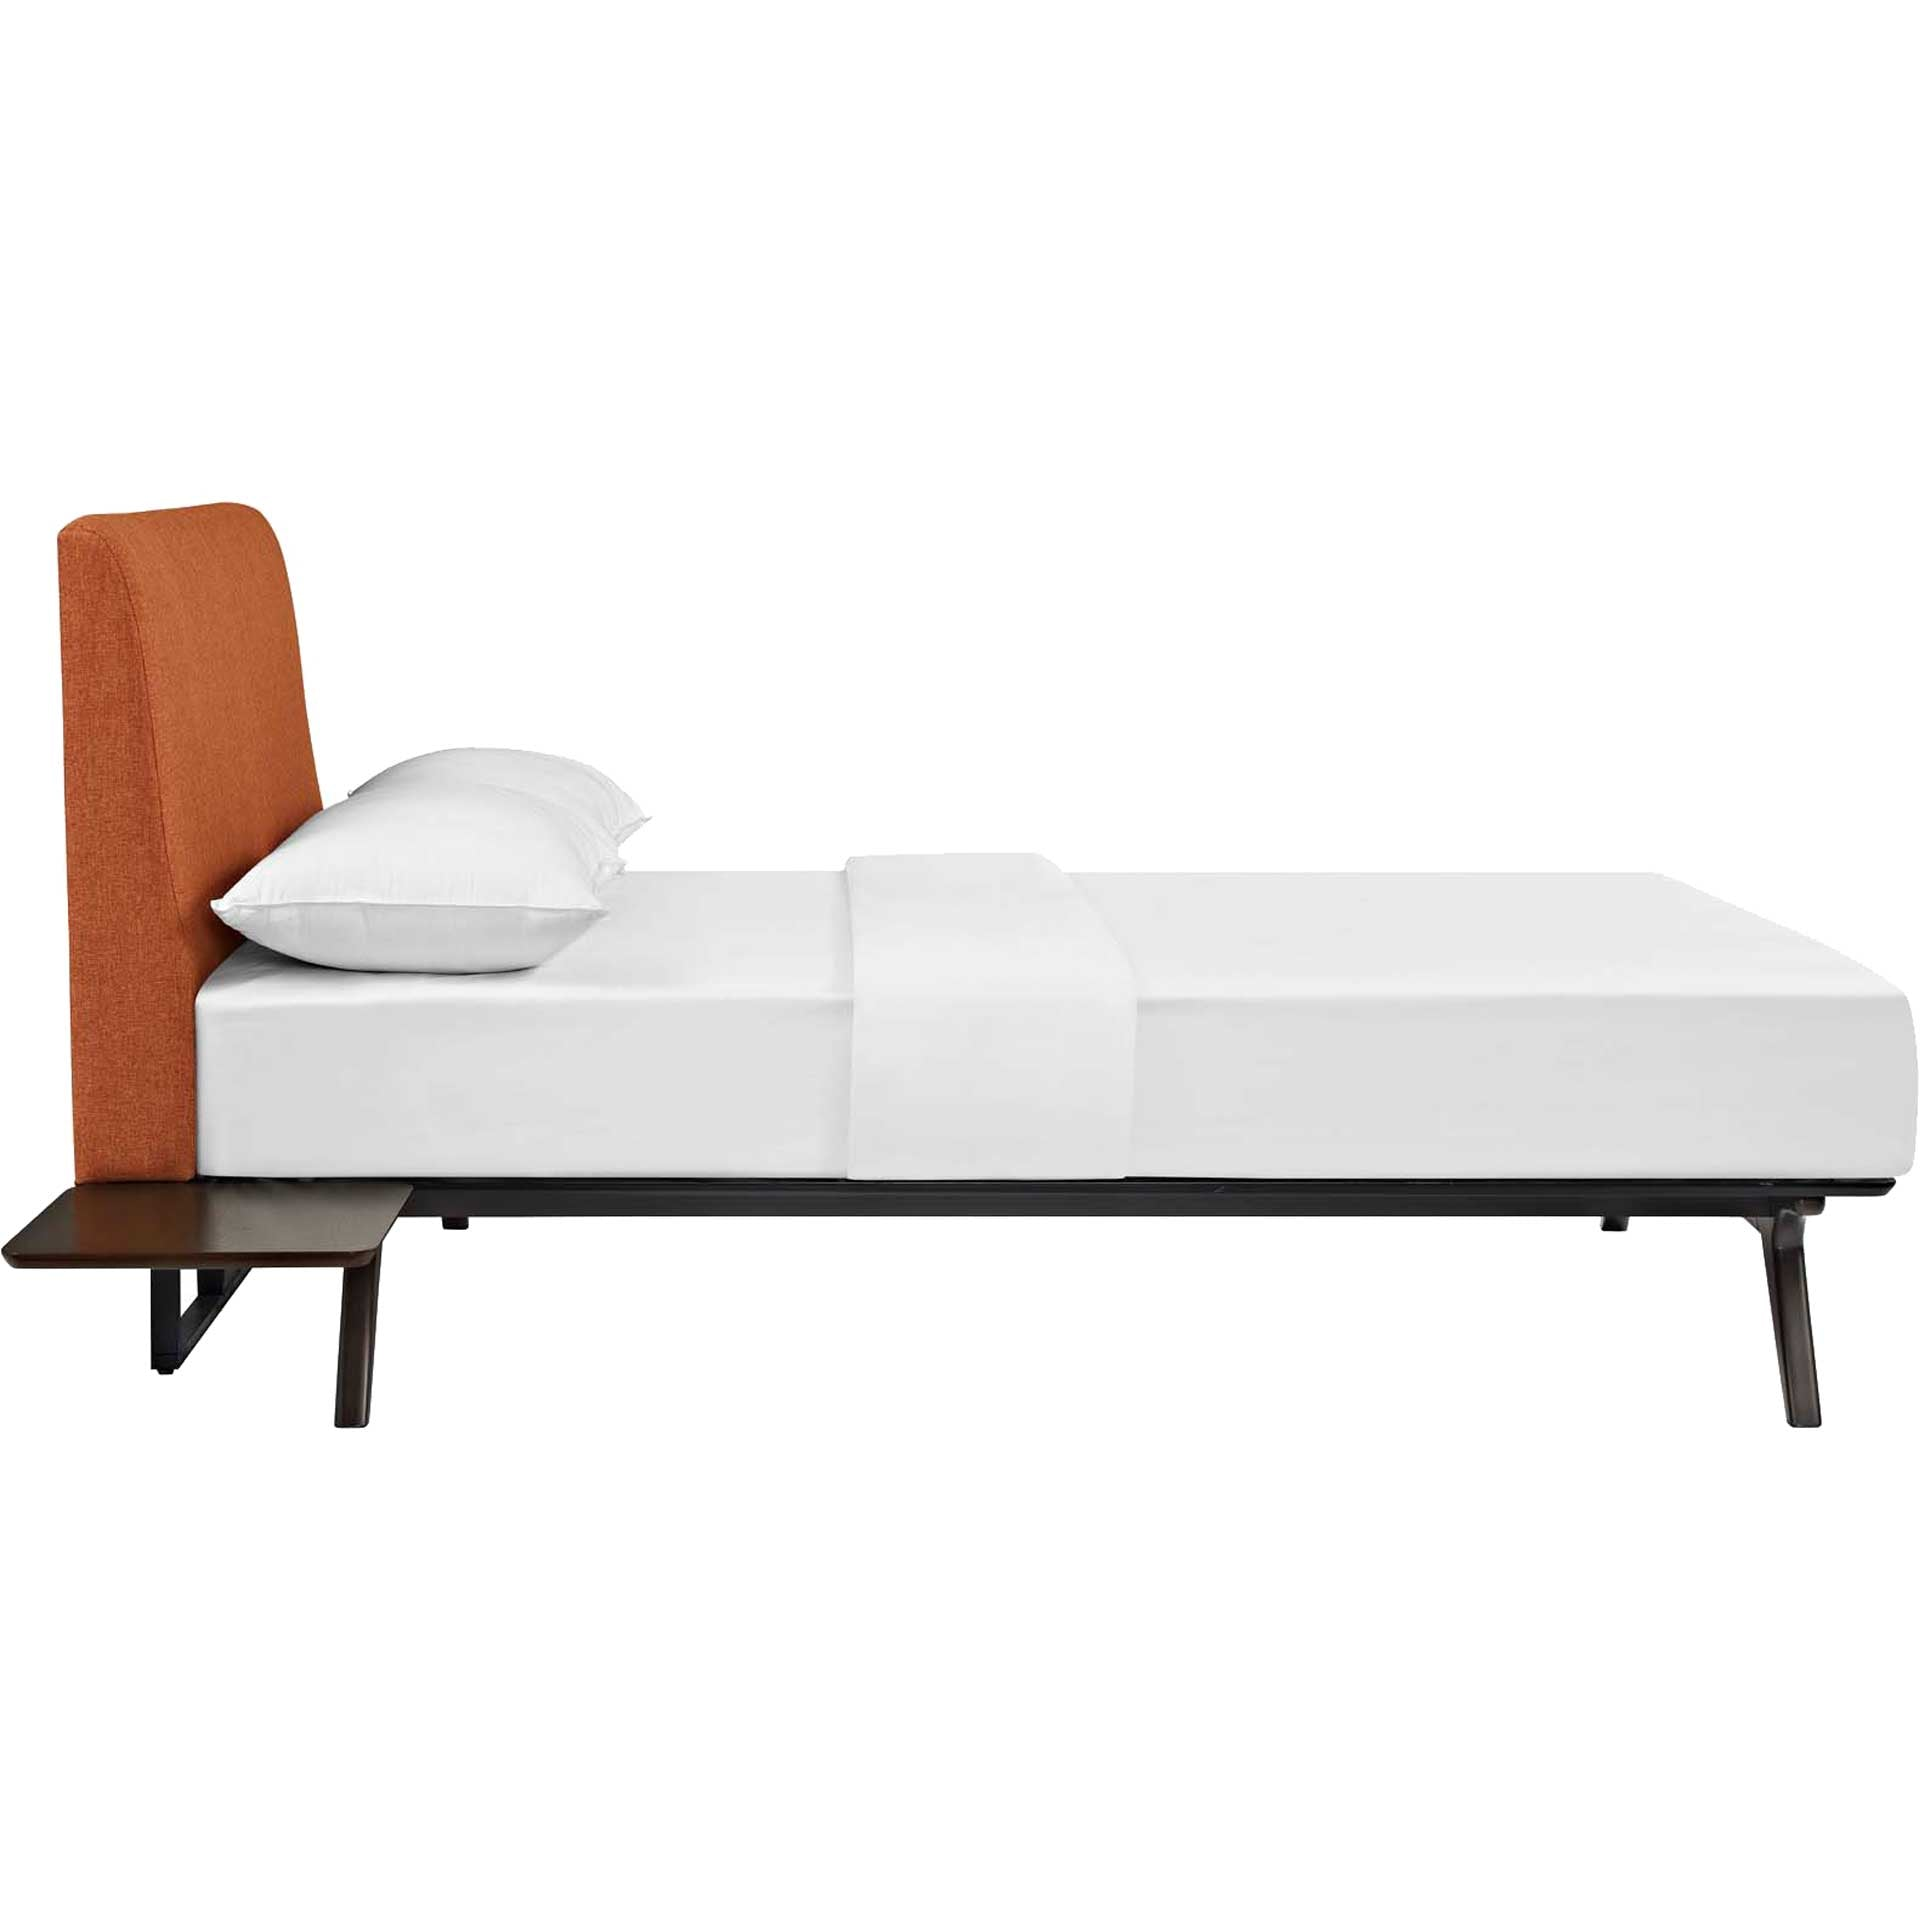 Thames Bed Cappuccino/Orange With Side Tables